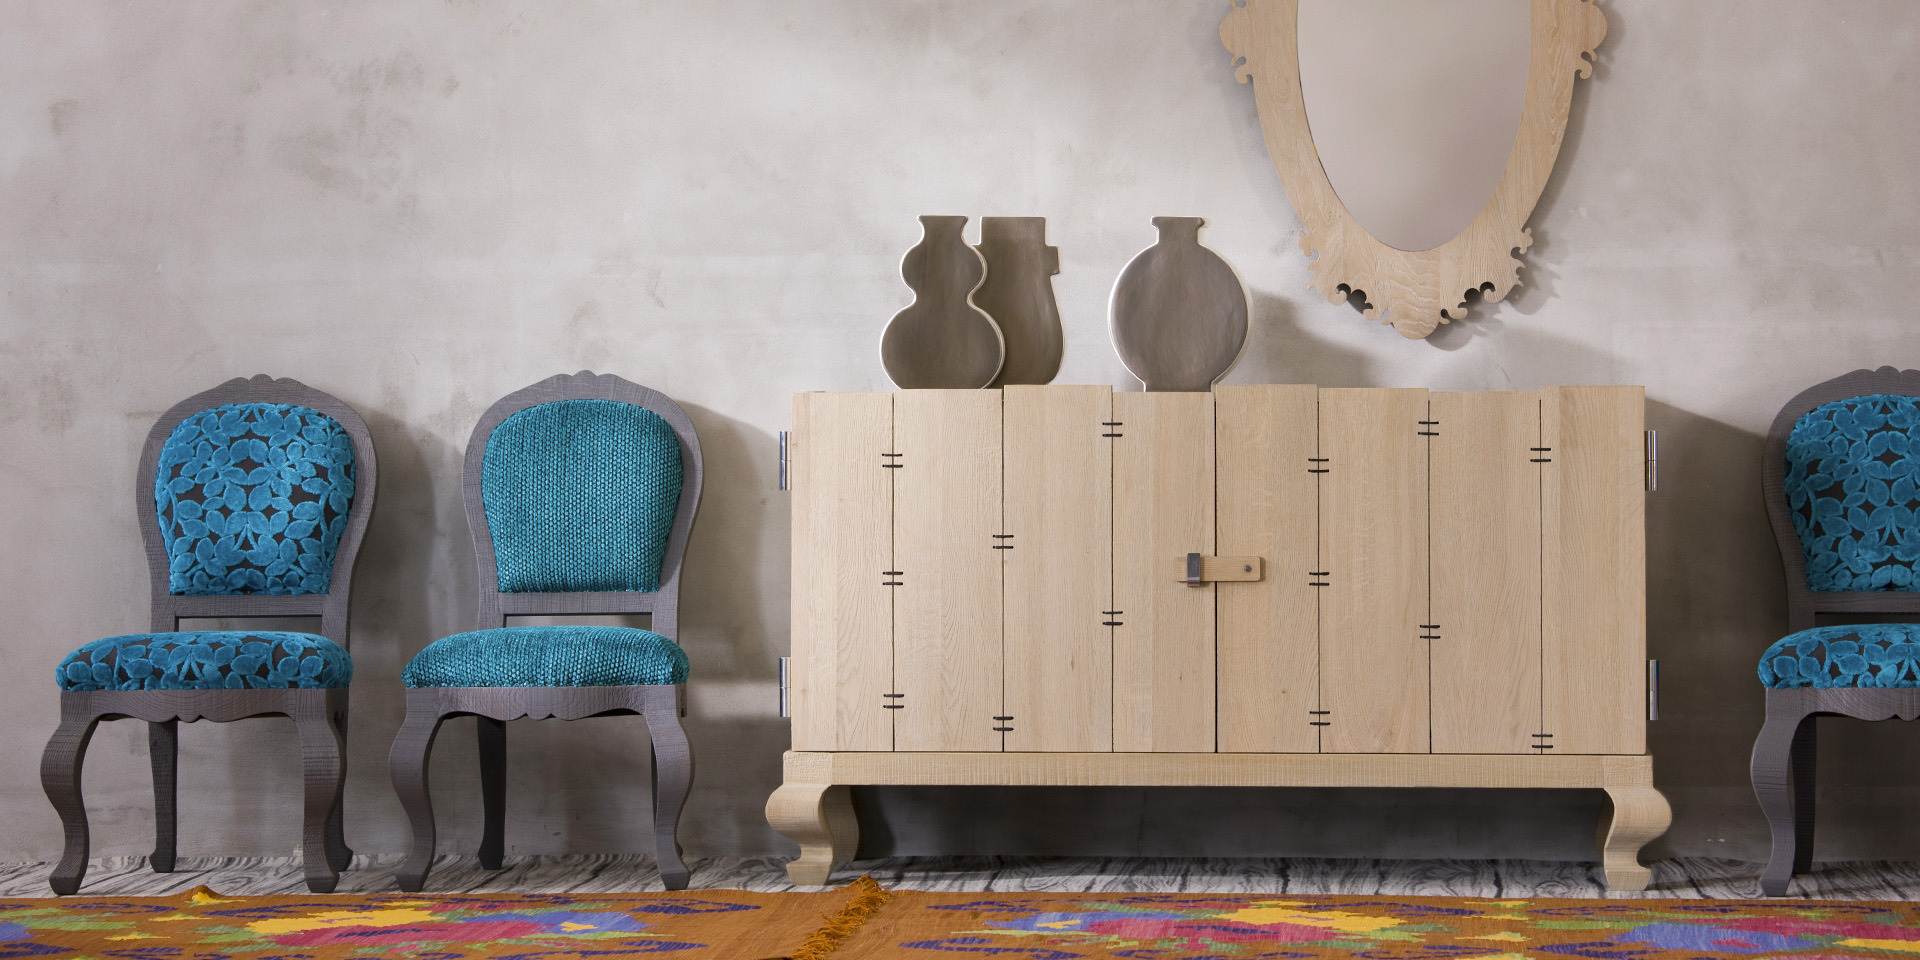 GB015 - Credenza in rovere massello